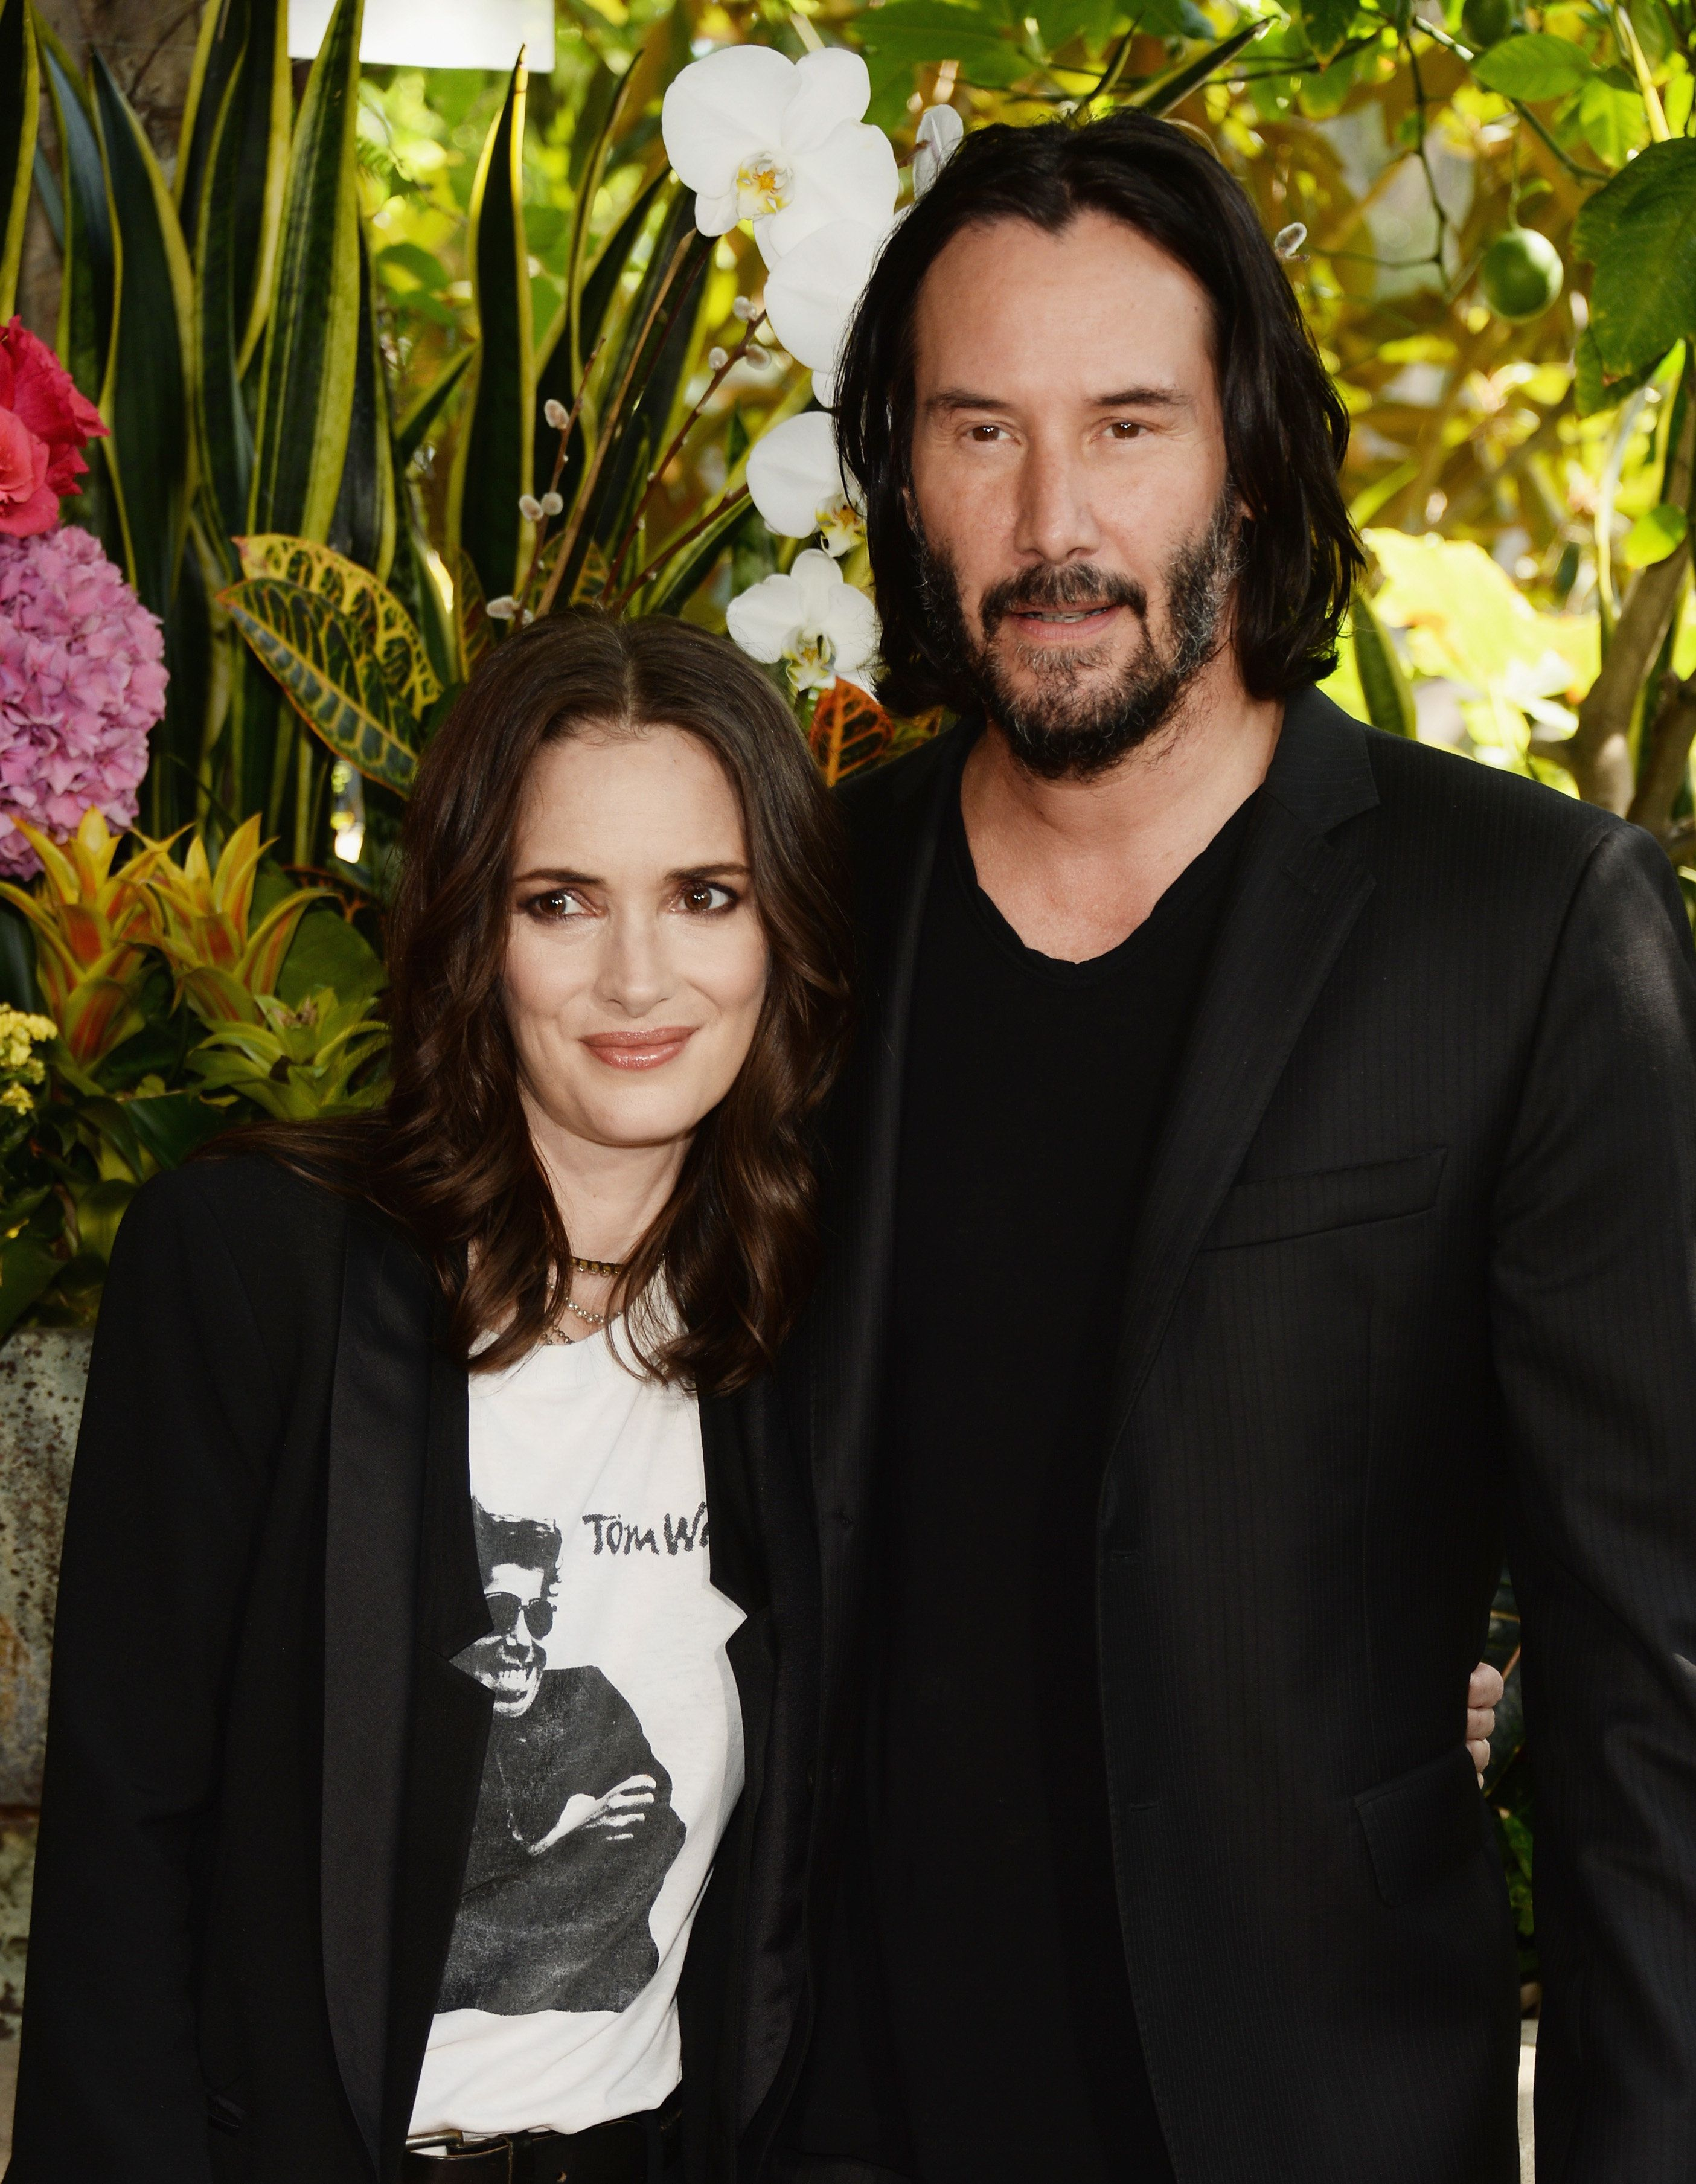 OOH: Francis Ford Coppola Appears To Confirm Winona Ryder's Claims She's Been Married To Keanu For 27